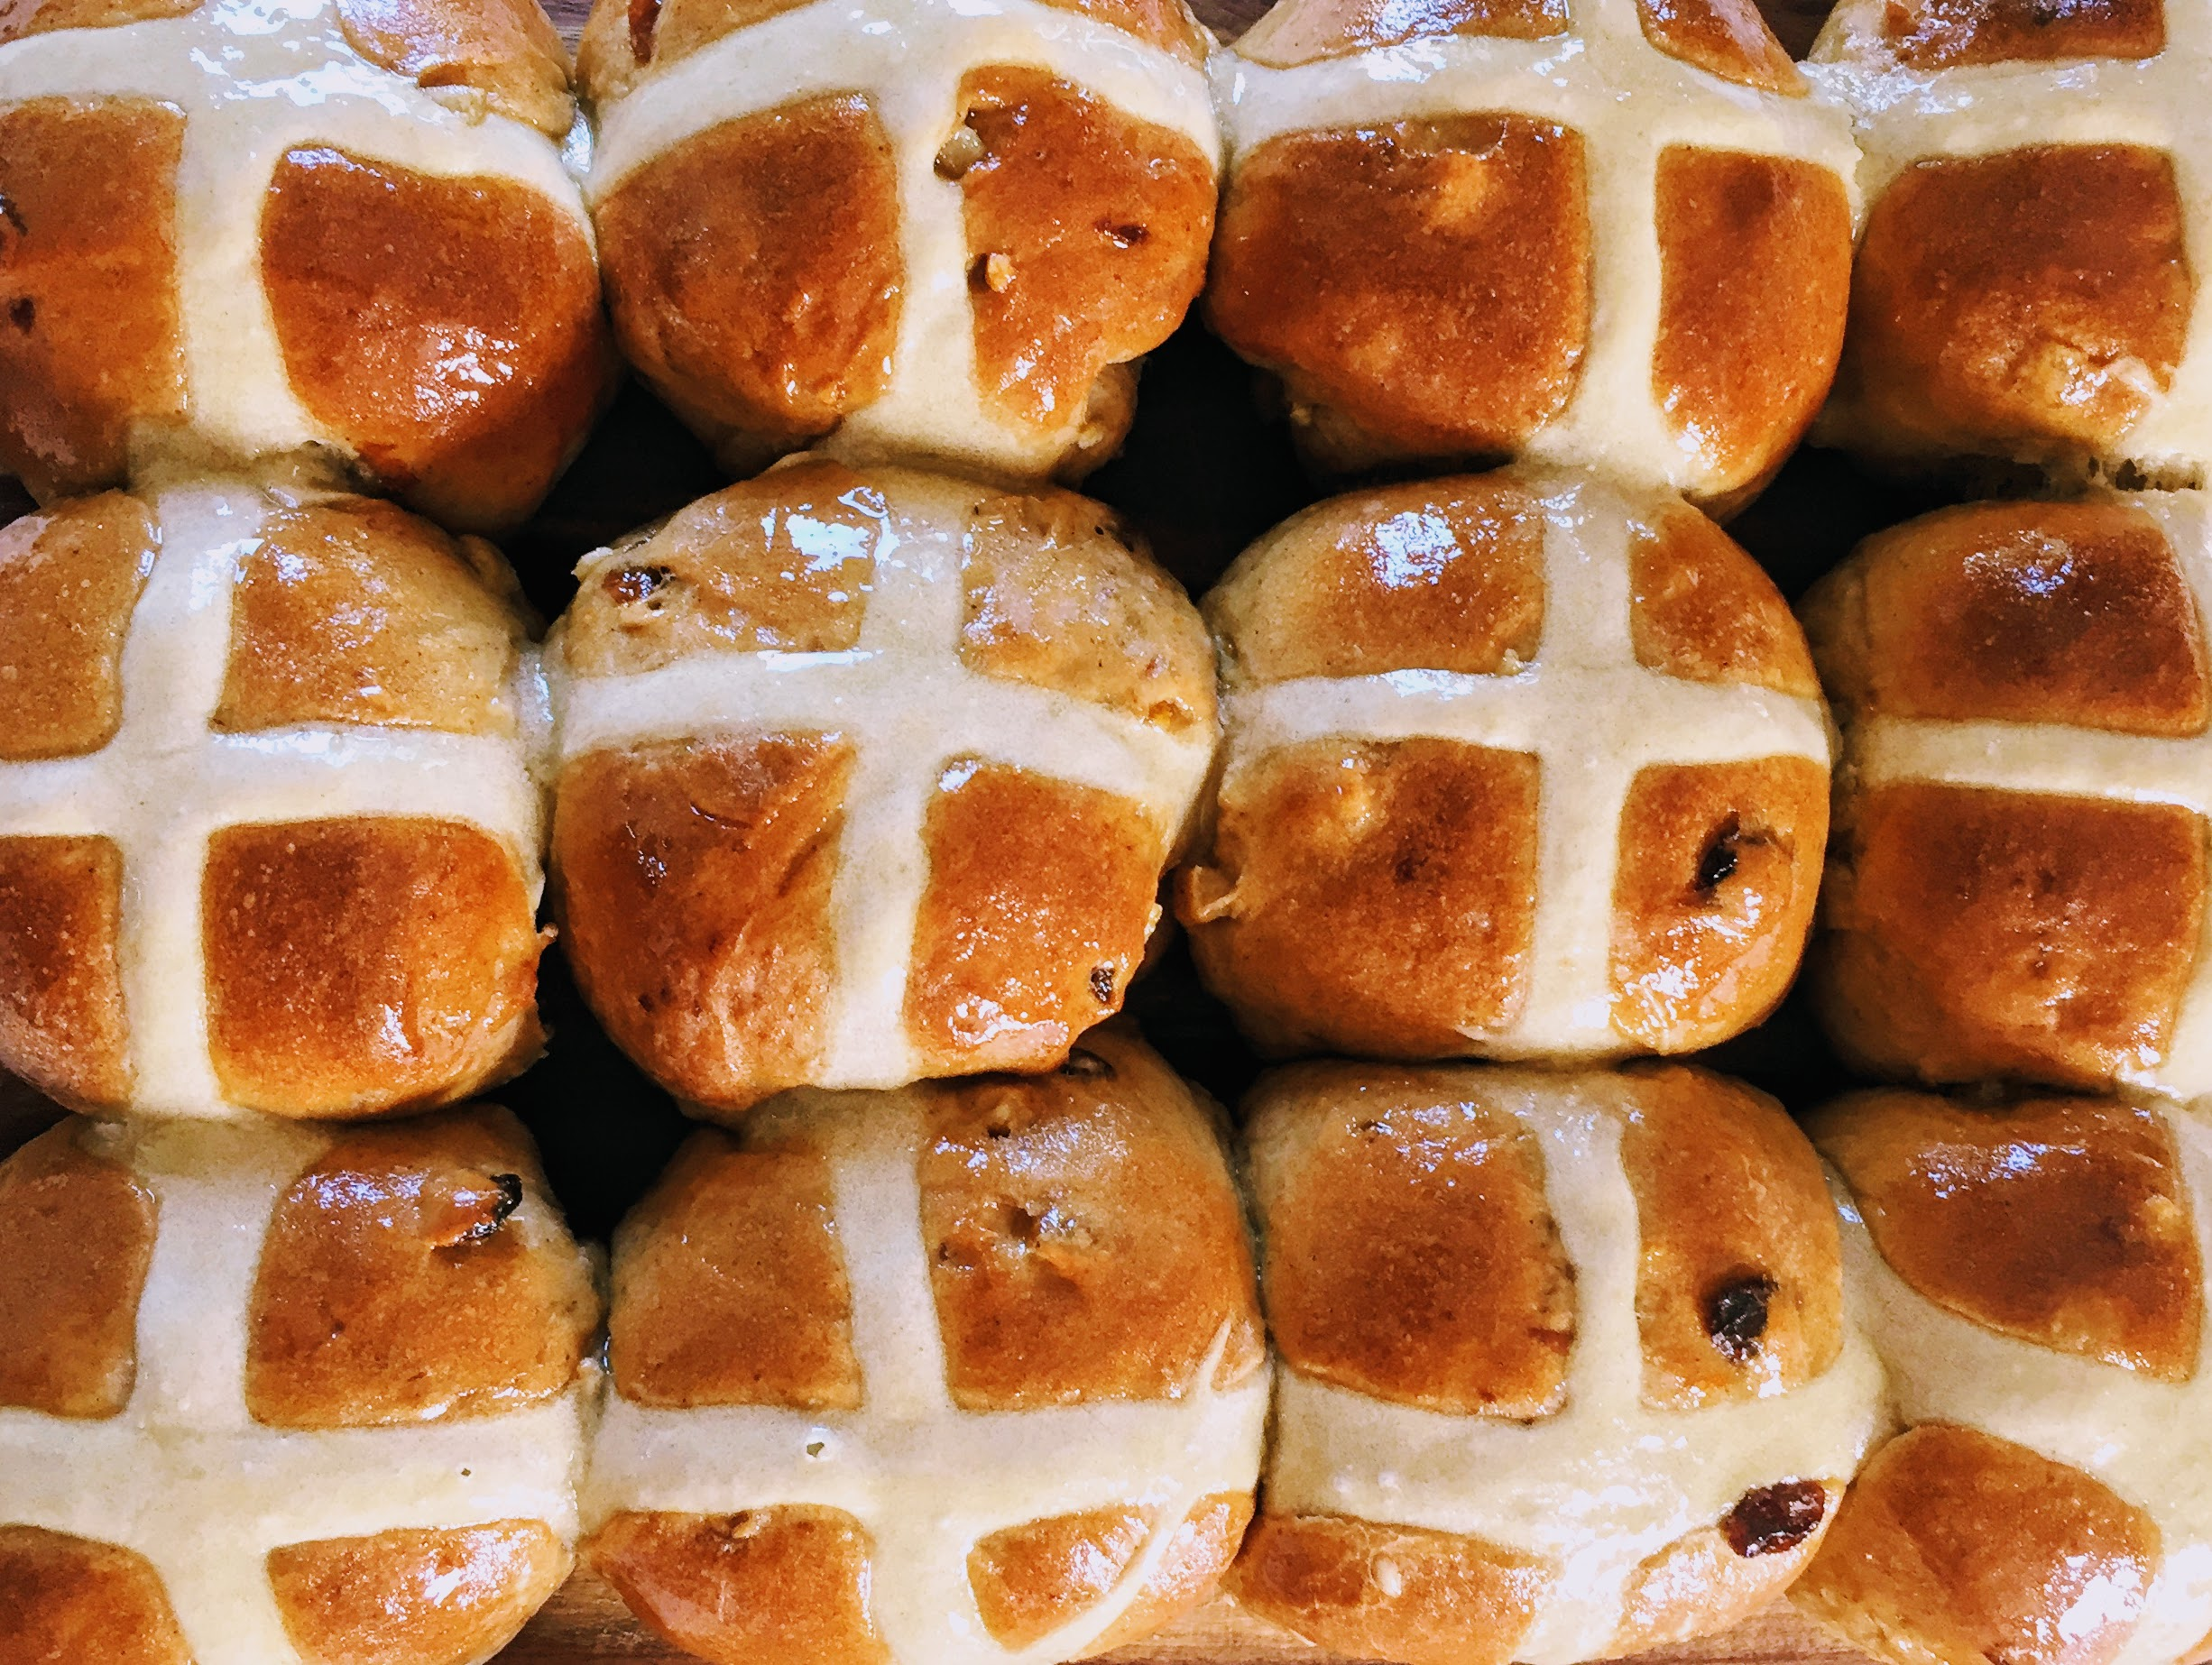 A close-up of twelve hot cross buns  -they are beautifully golden brown on top with a white cross on each, and there are hints of sultanas peeking through the dough. The buns are glossy with an orange glaze.